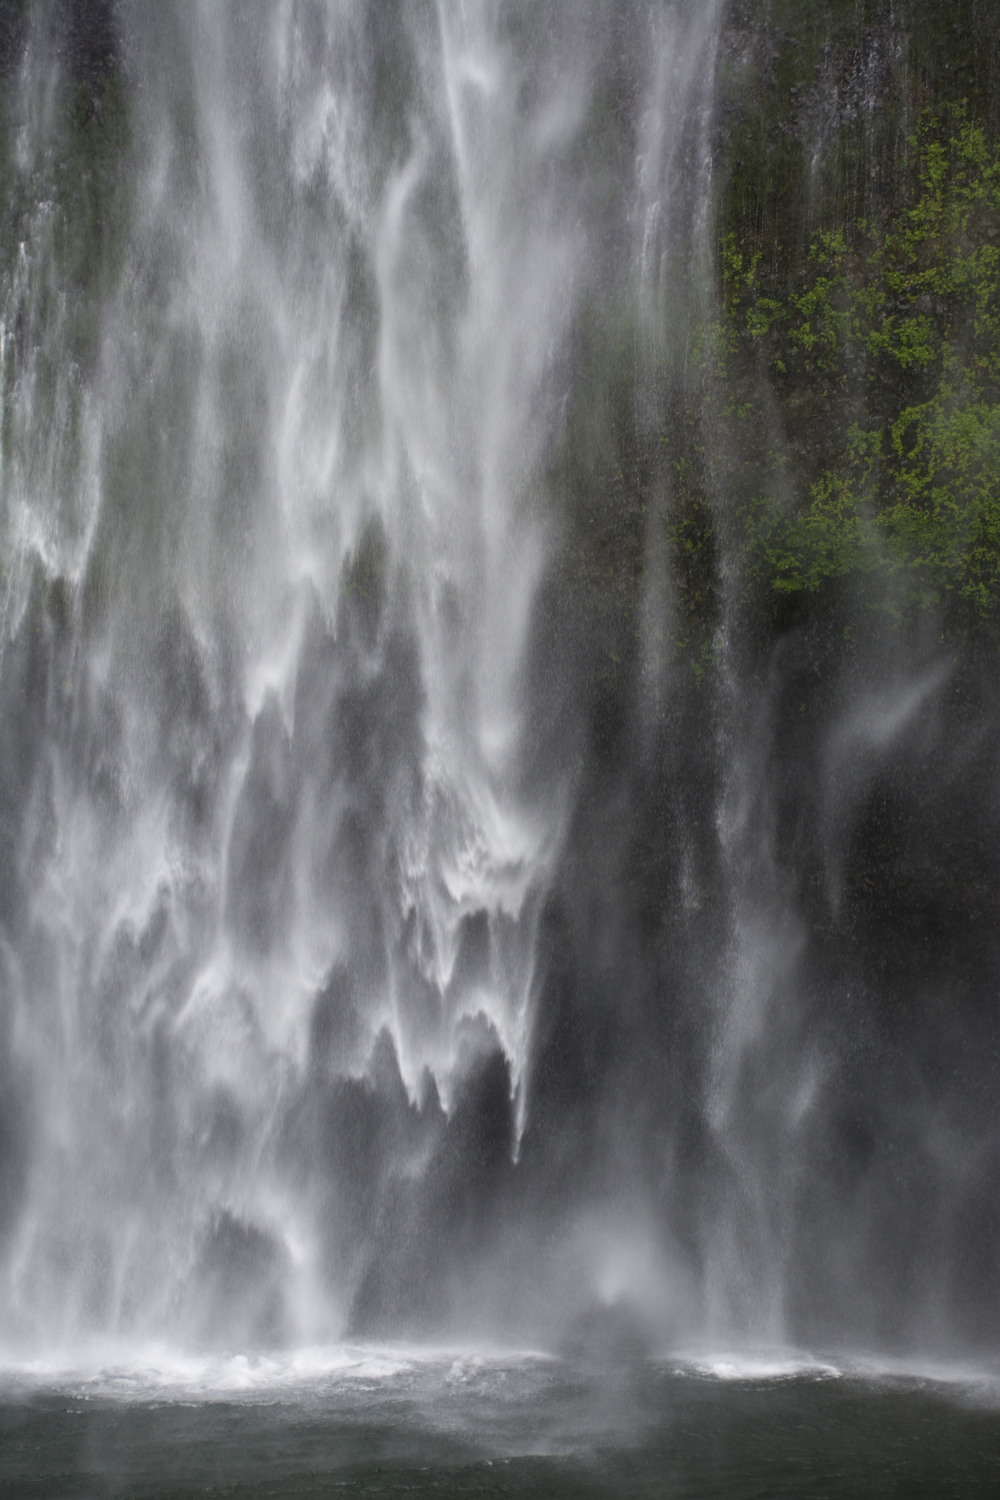 What Central America rain seems like. (Multnomah Falls, Oregon; July 2016)